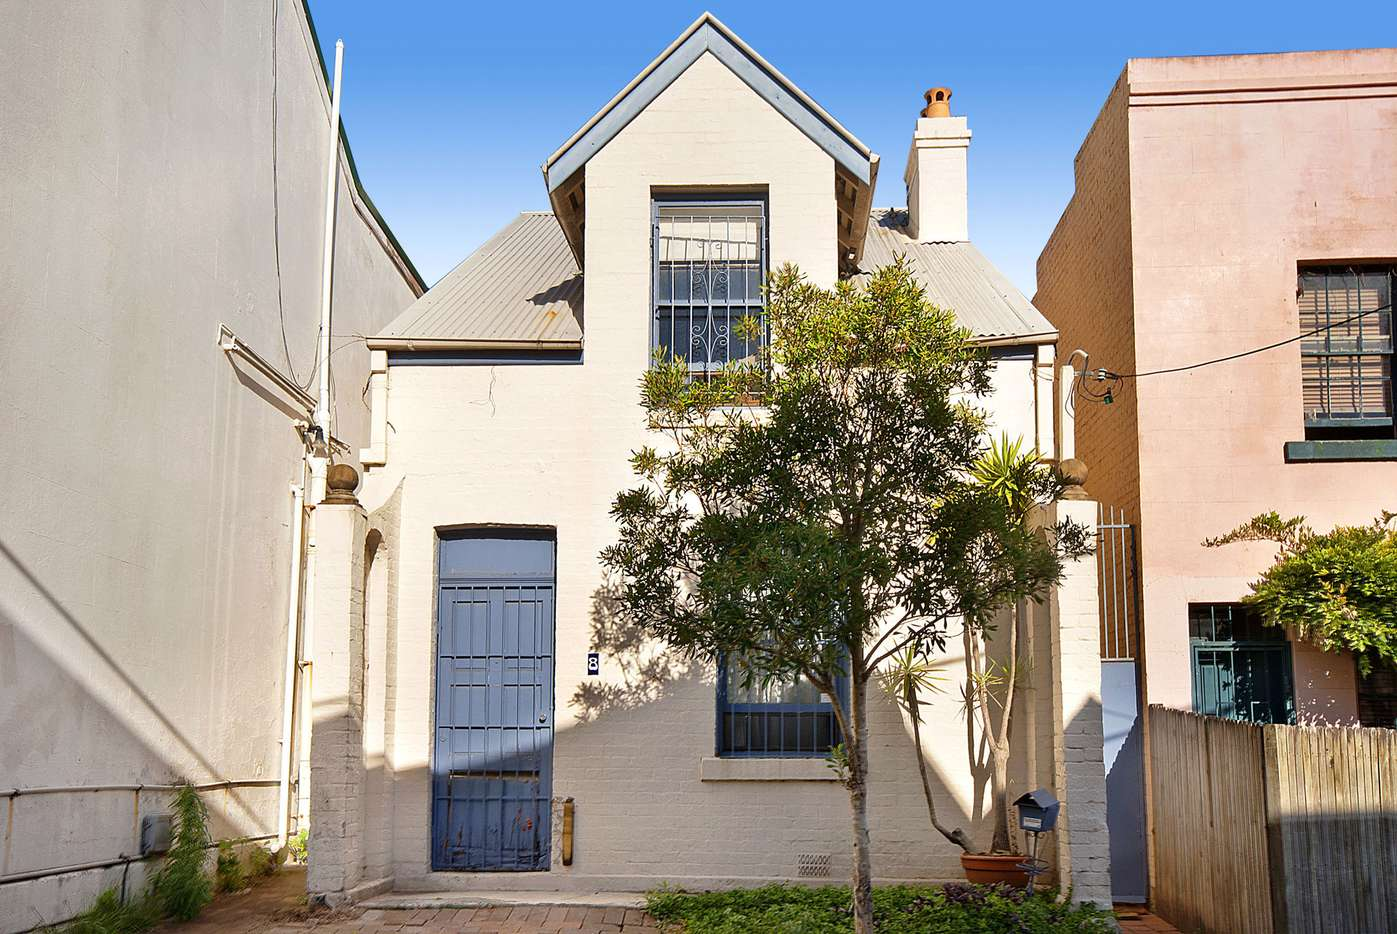 Main view of Homely terrace listing, 8 Seymour Place, Paddington, NSW 2021